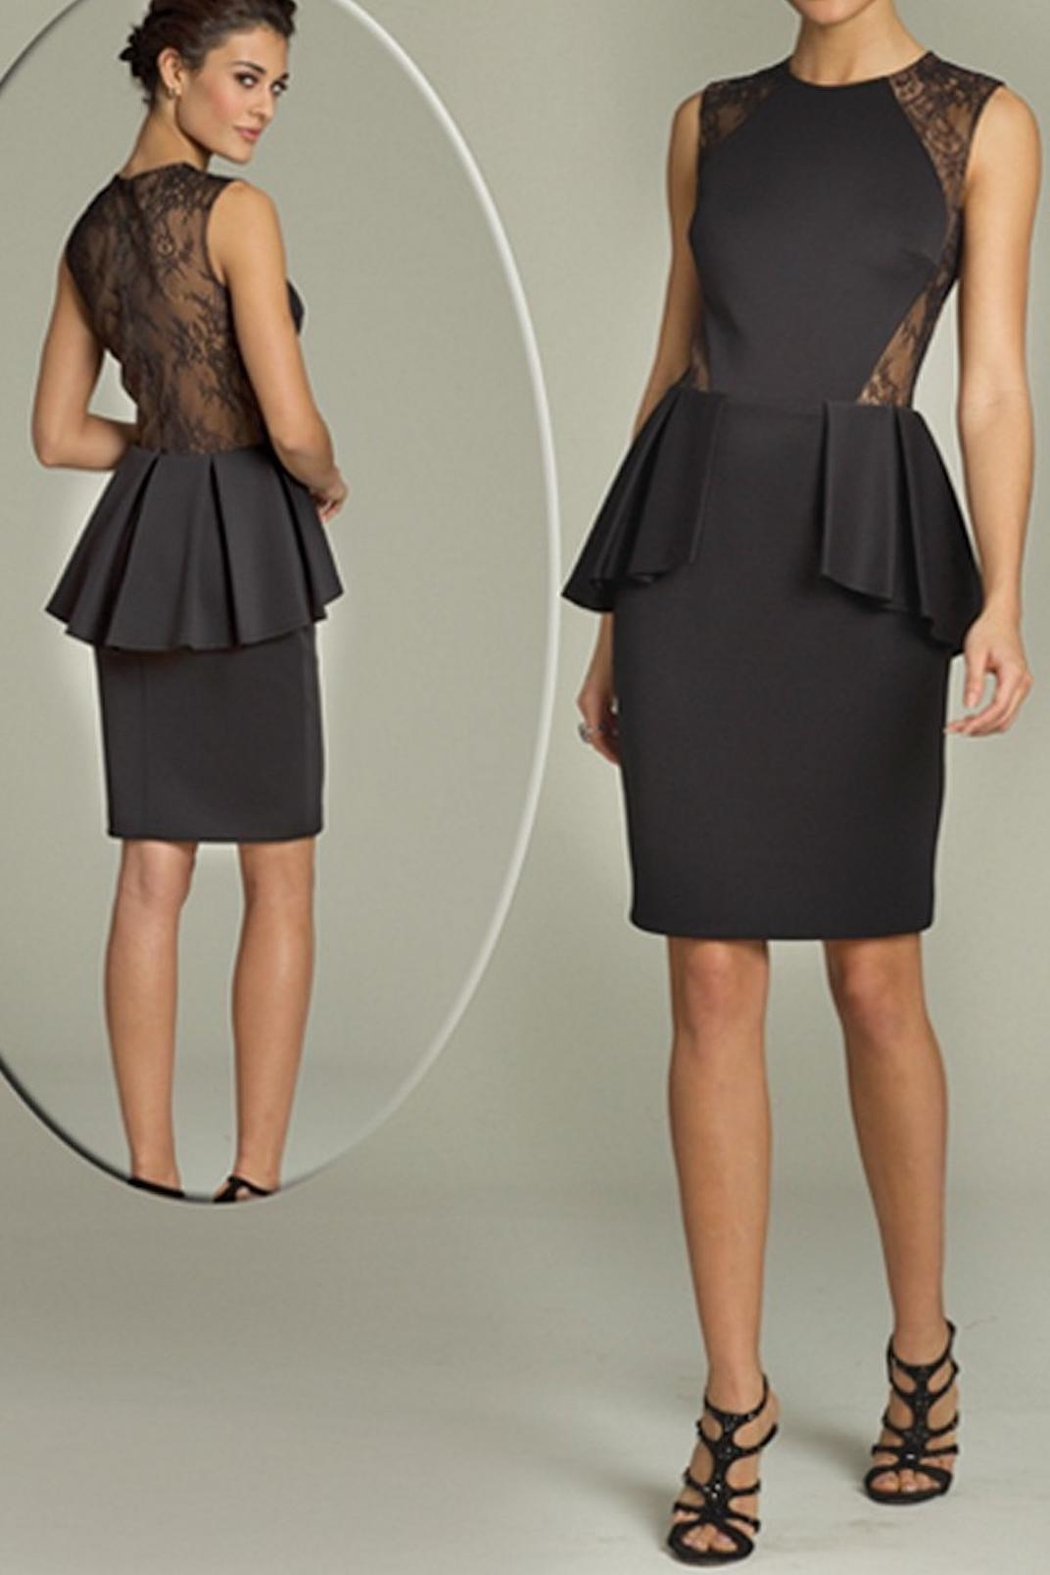 0dd22f62e892 Jovani Pleated Peplum Dress from Guilford by A's Unique Boutique ...